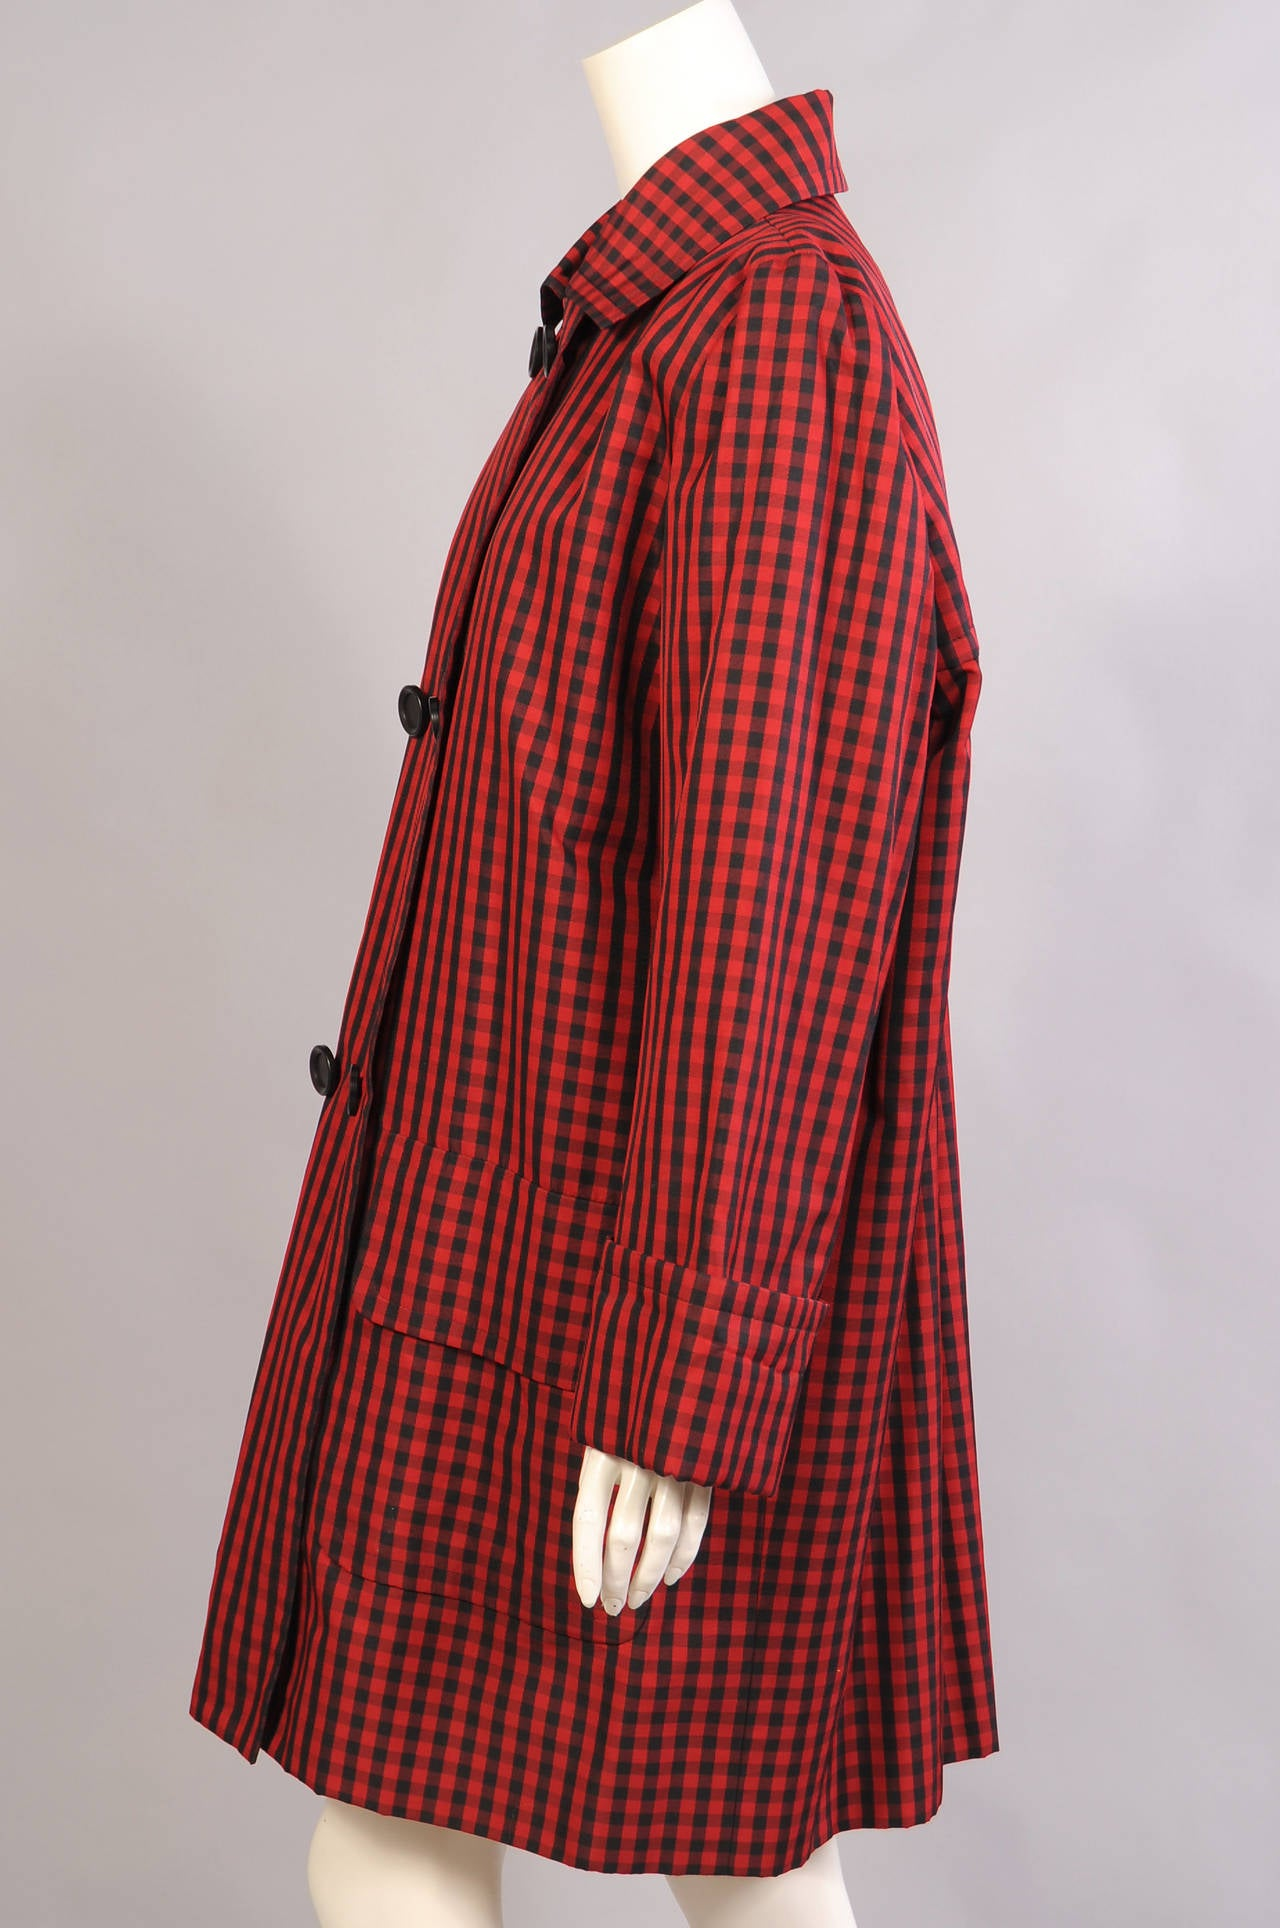 Givenchy Haute Couture Red and Black Silk Coat In Excellent Condition For Sale In New Hope, PA